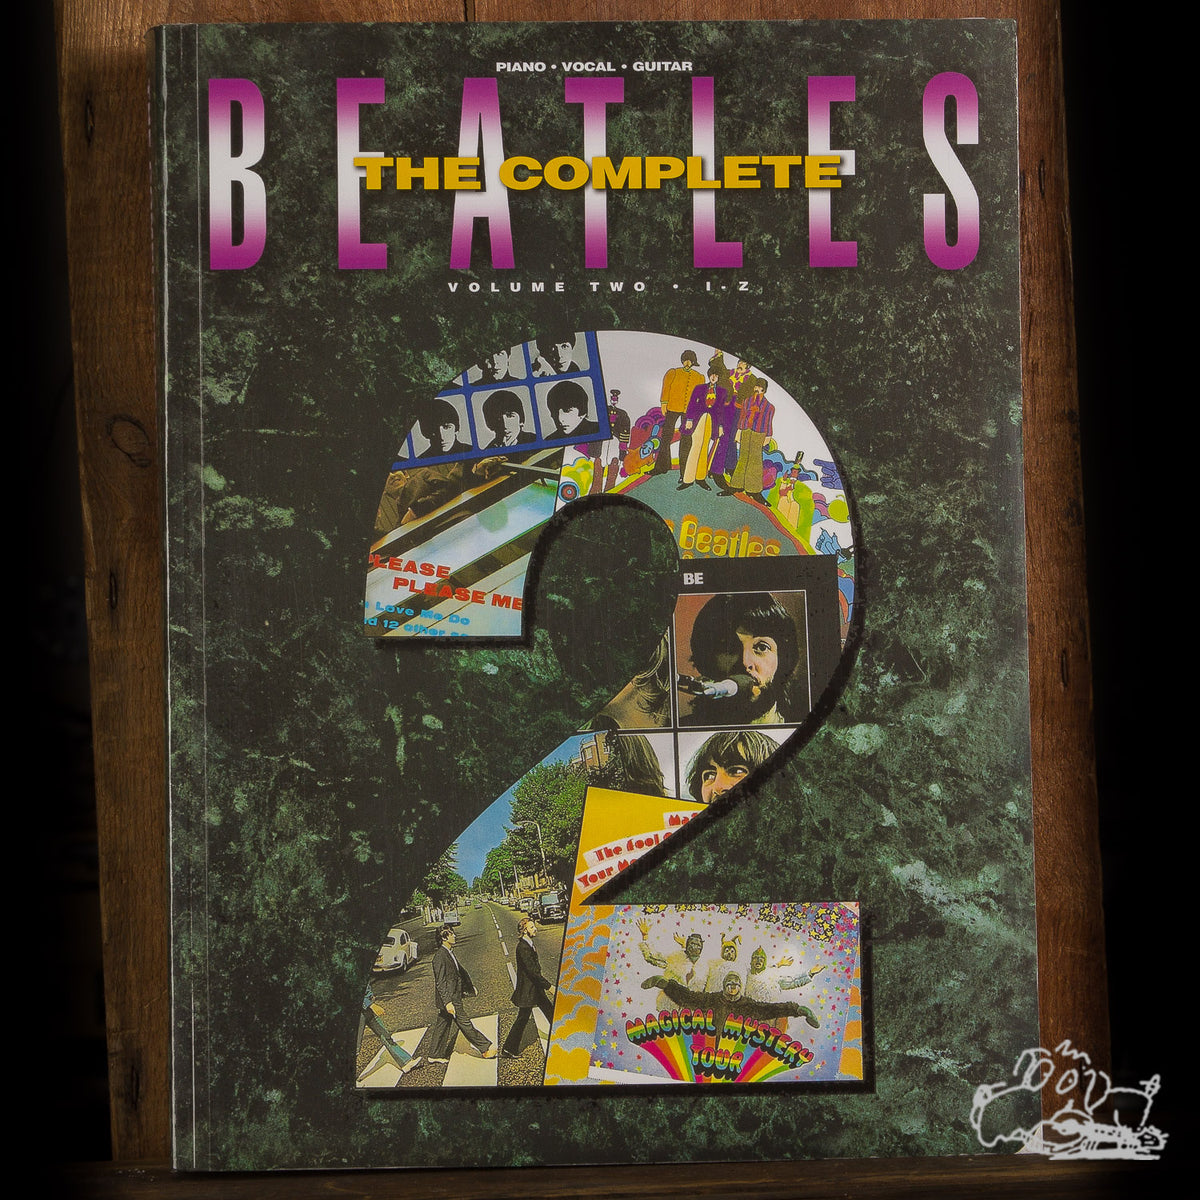 The Complete Beatles Vol. 2 I-Z Piano/Vocal/Guitar